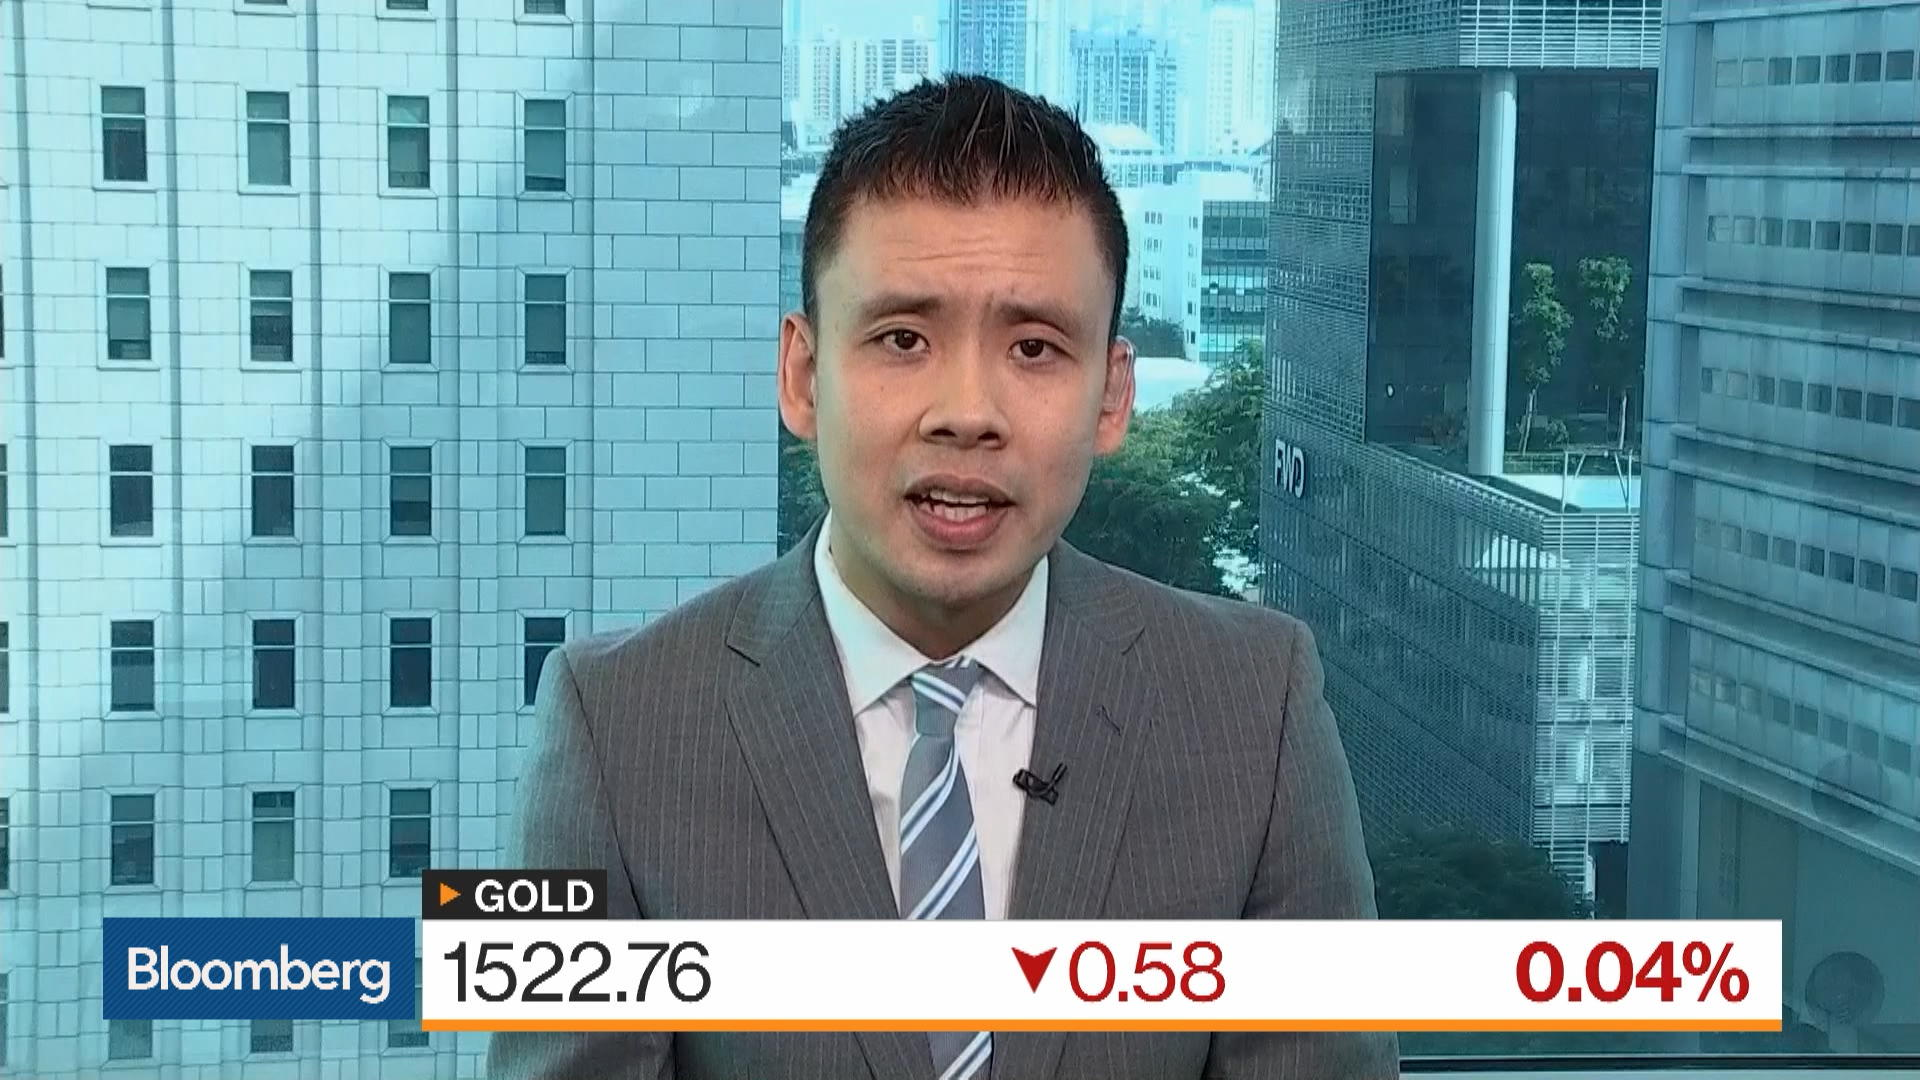 Francis Tan, istrategist at UOB Private Bank, on Gold